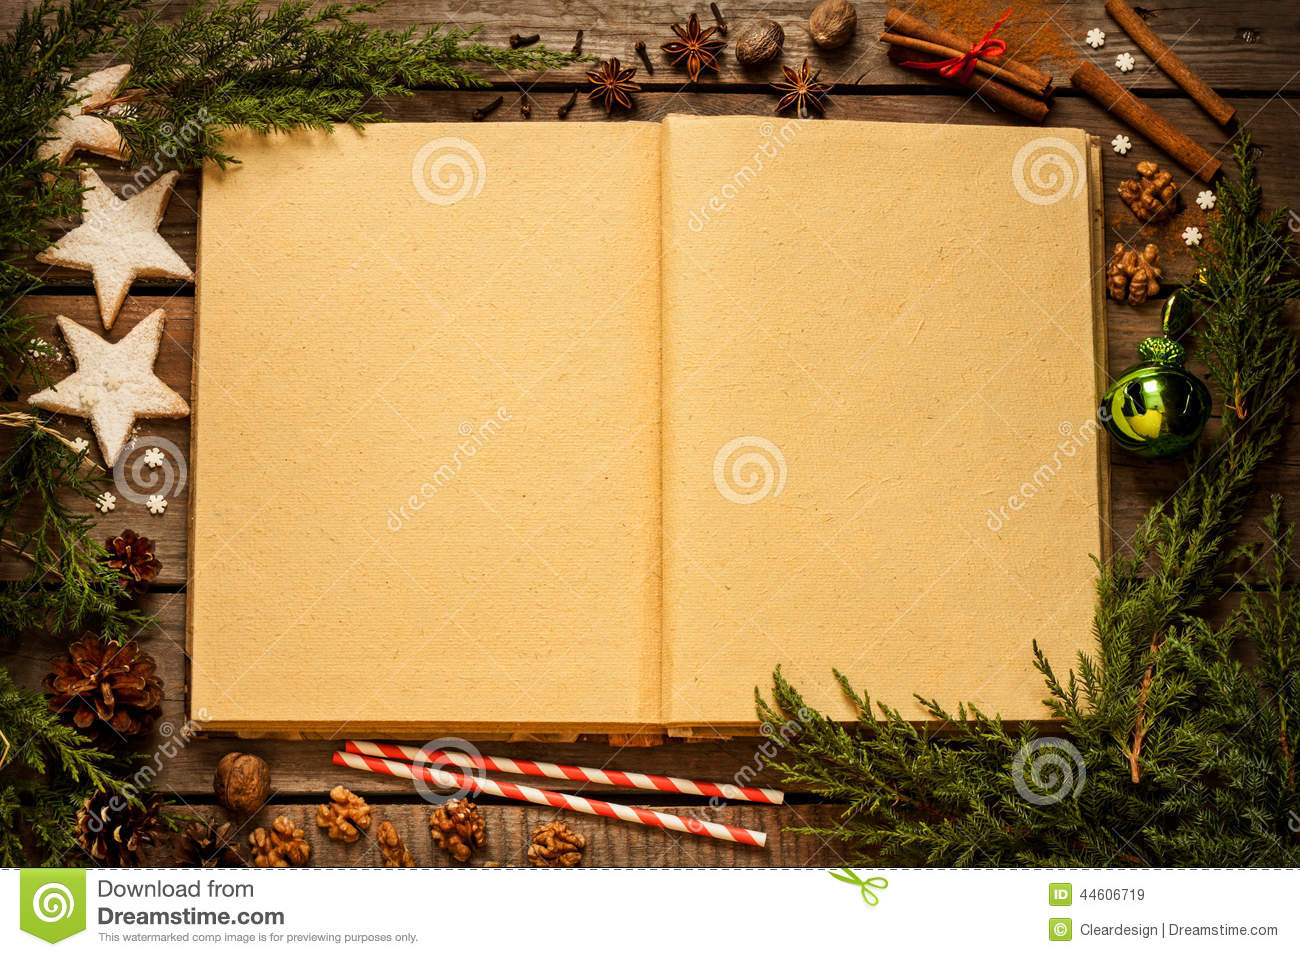 old blank opened book with christmas decorations around on